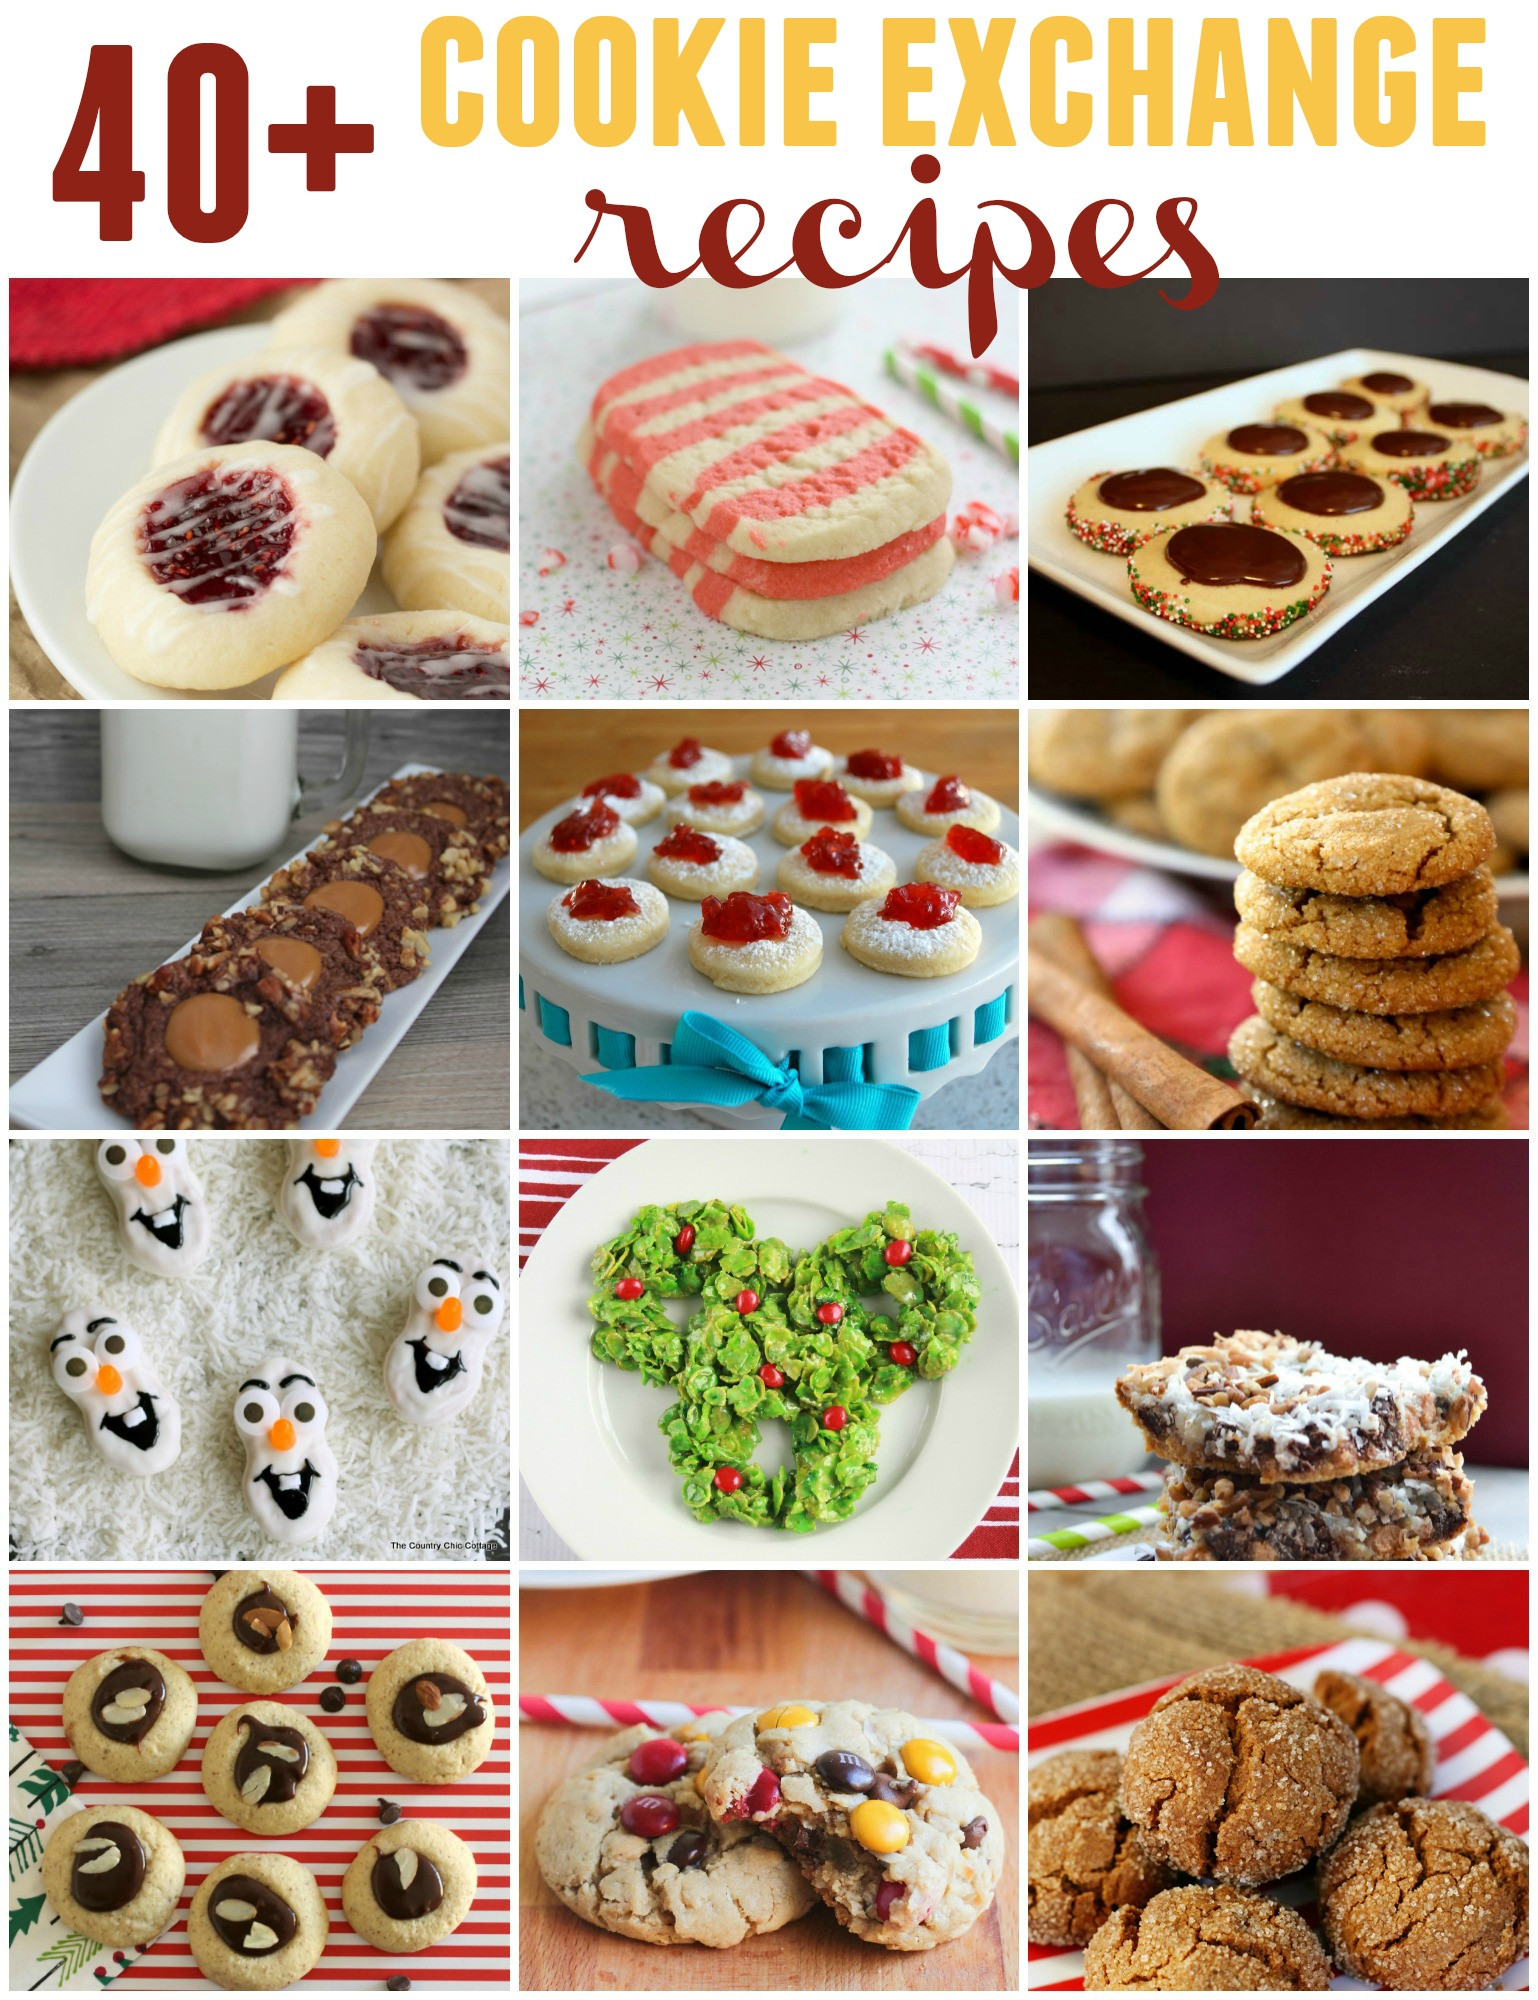 Easy Christmas Cookies For Cookie Exchange  40 Cookie Exchange Recipes and Christmas Thumbprint